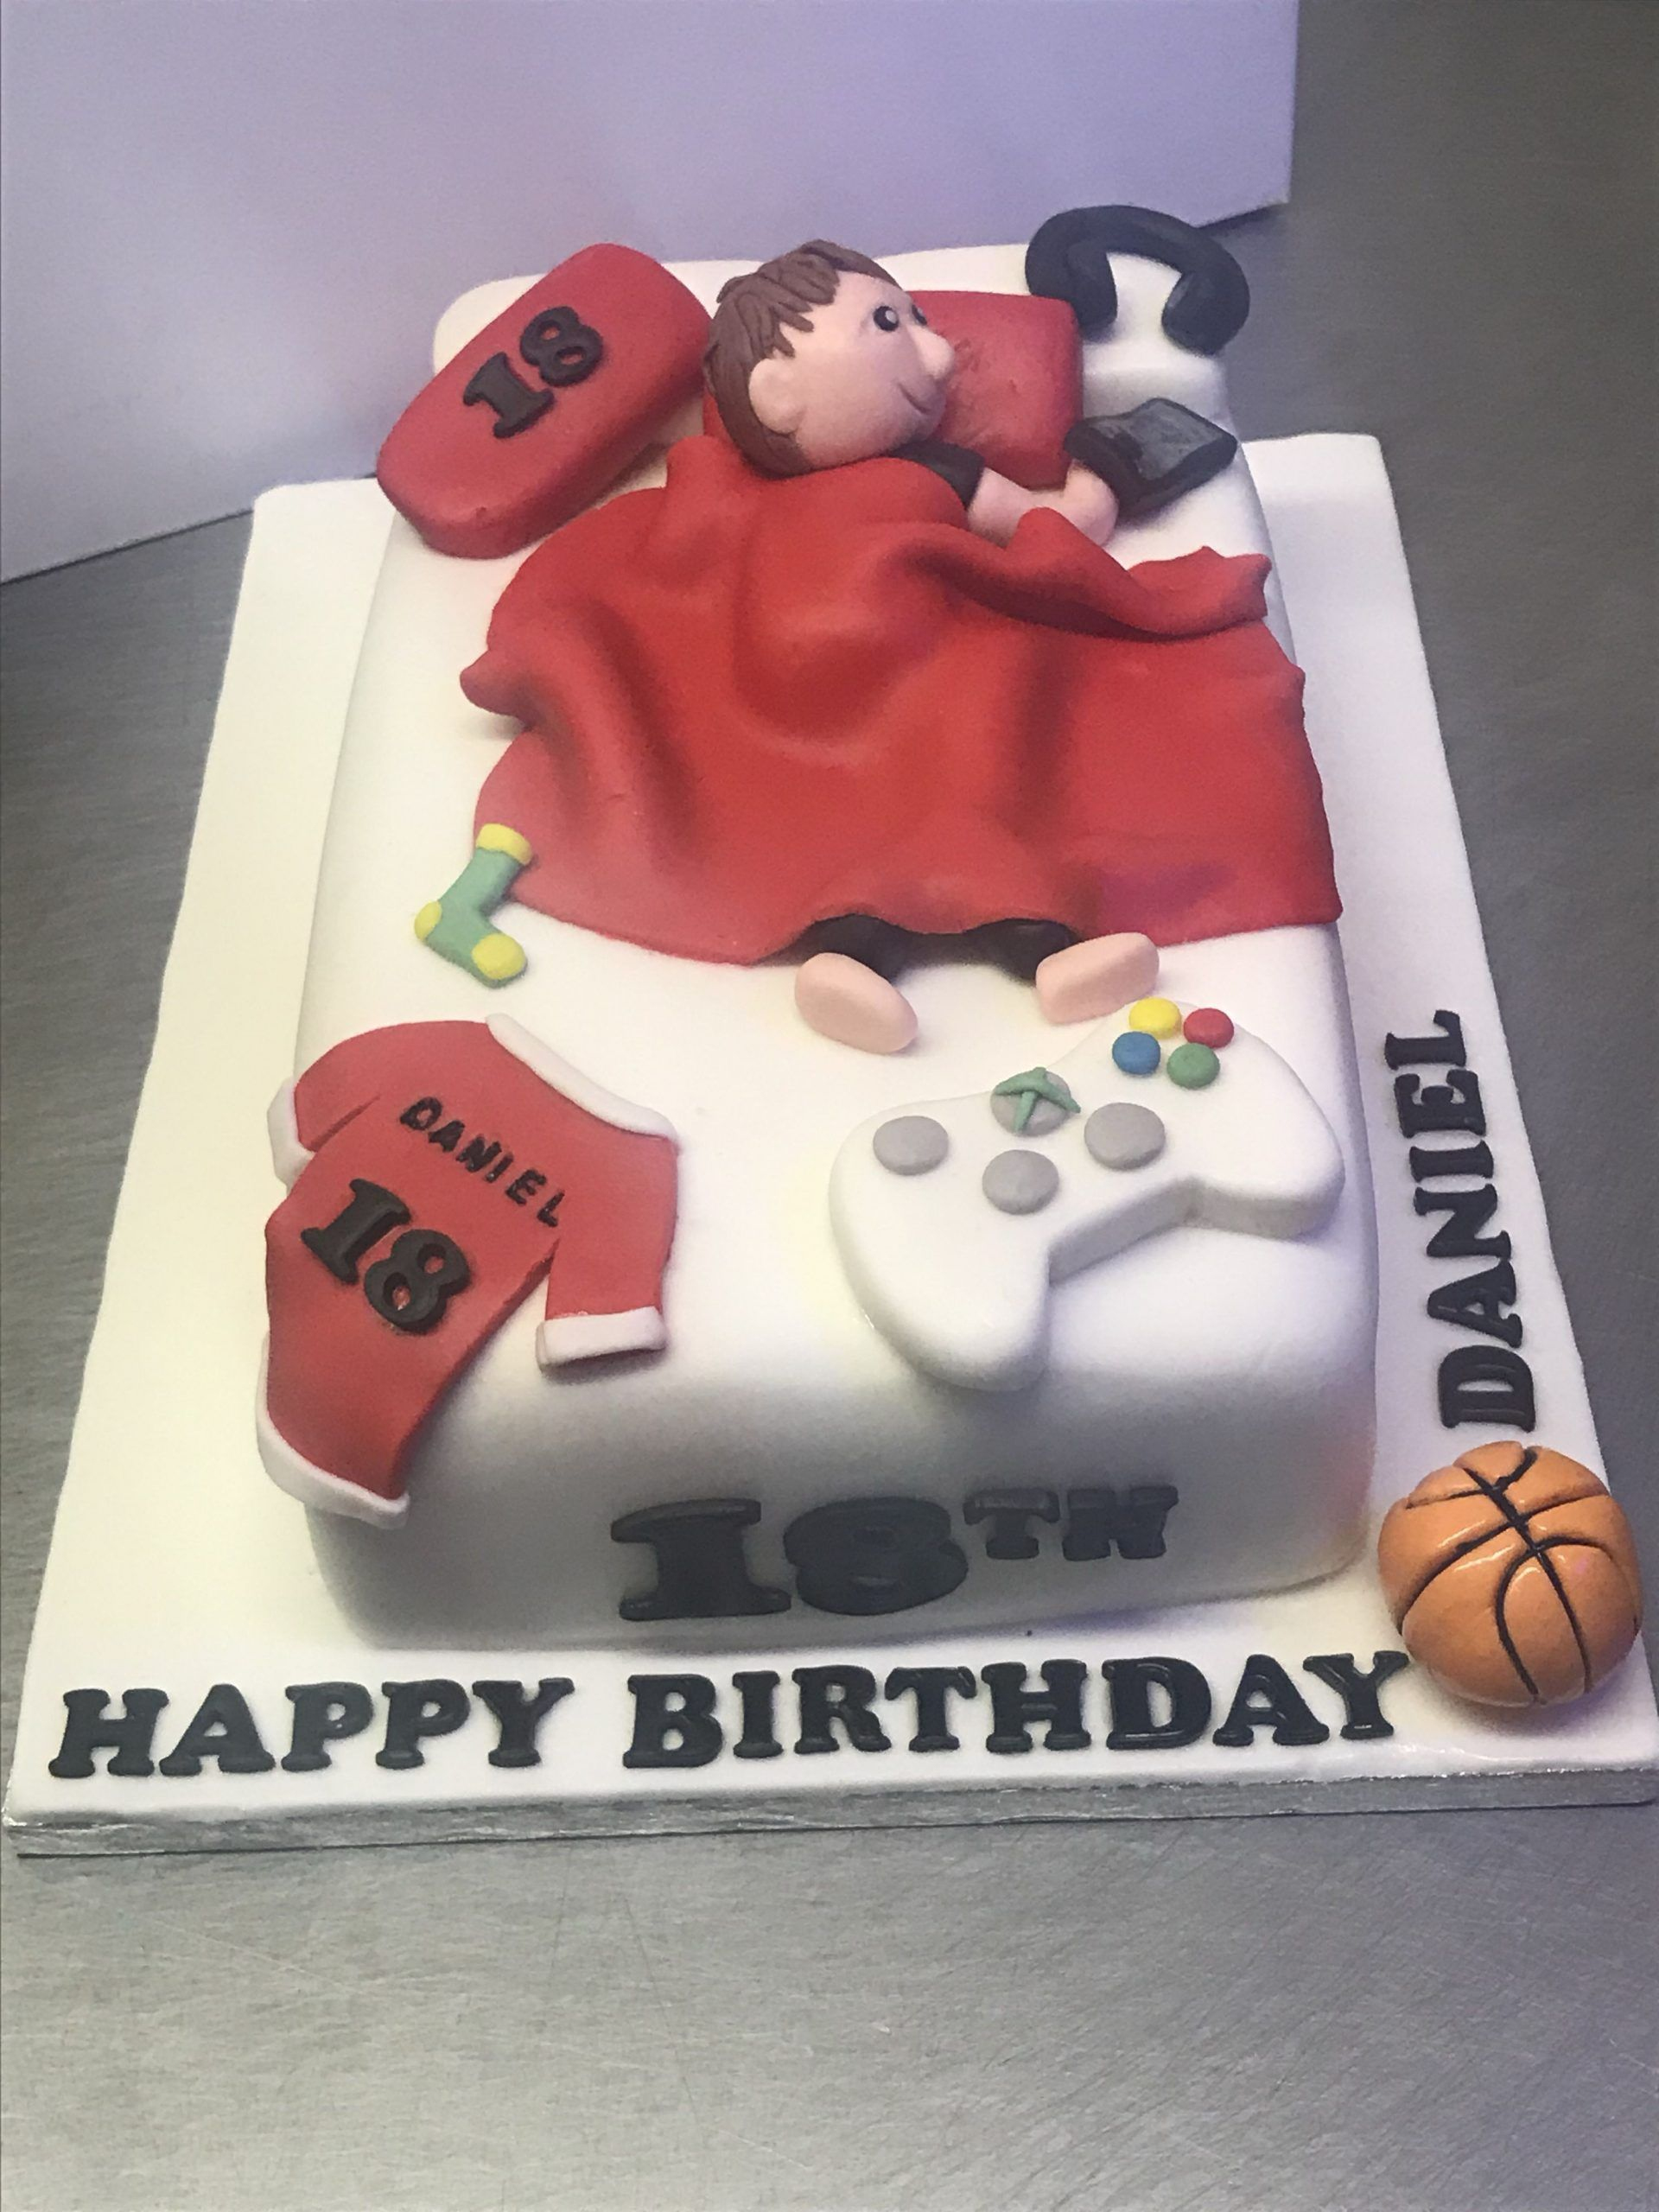 18th Birthday Cake Ideas For Guys : birthday, ideas, Birthday, Cake,